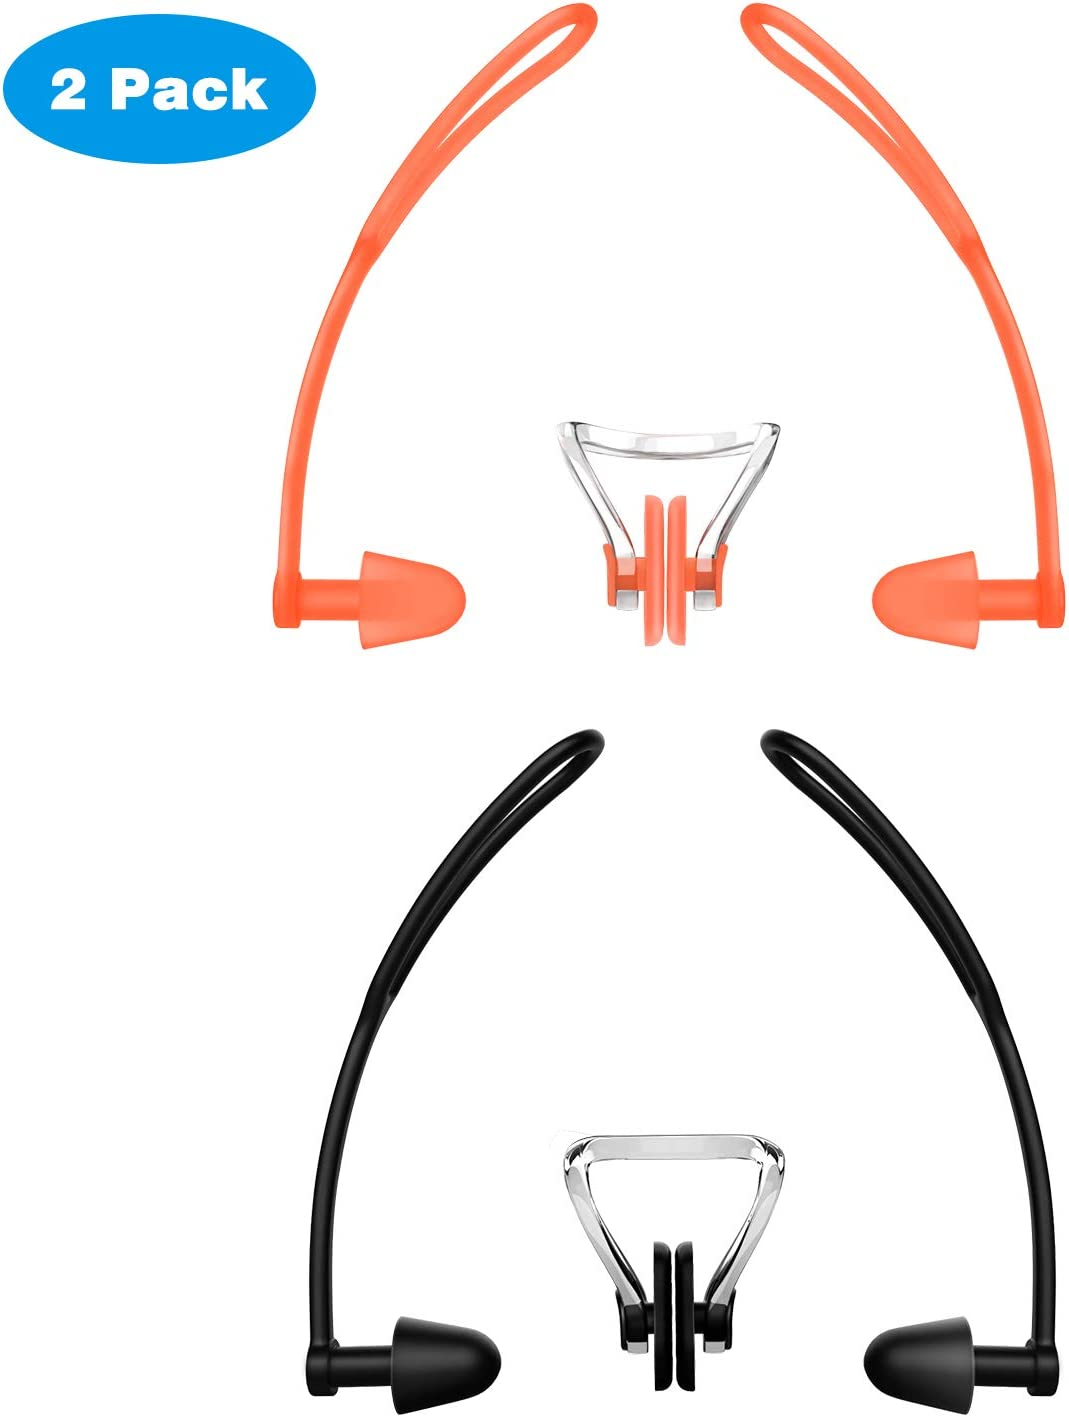 MoKo Washington Mall Swimming Nose Clips and Ear Straps Plugs 2 Wat with Pack Max 59% OFF